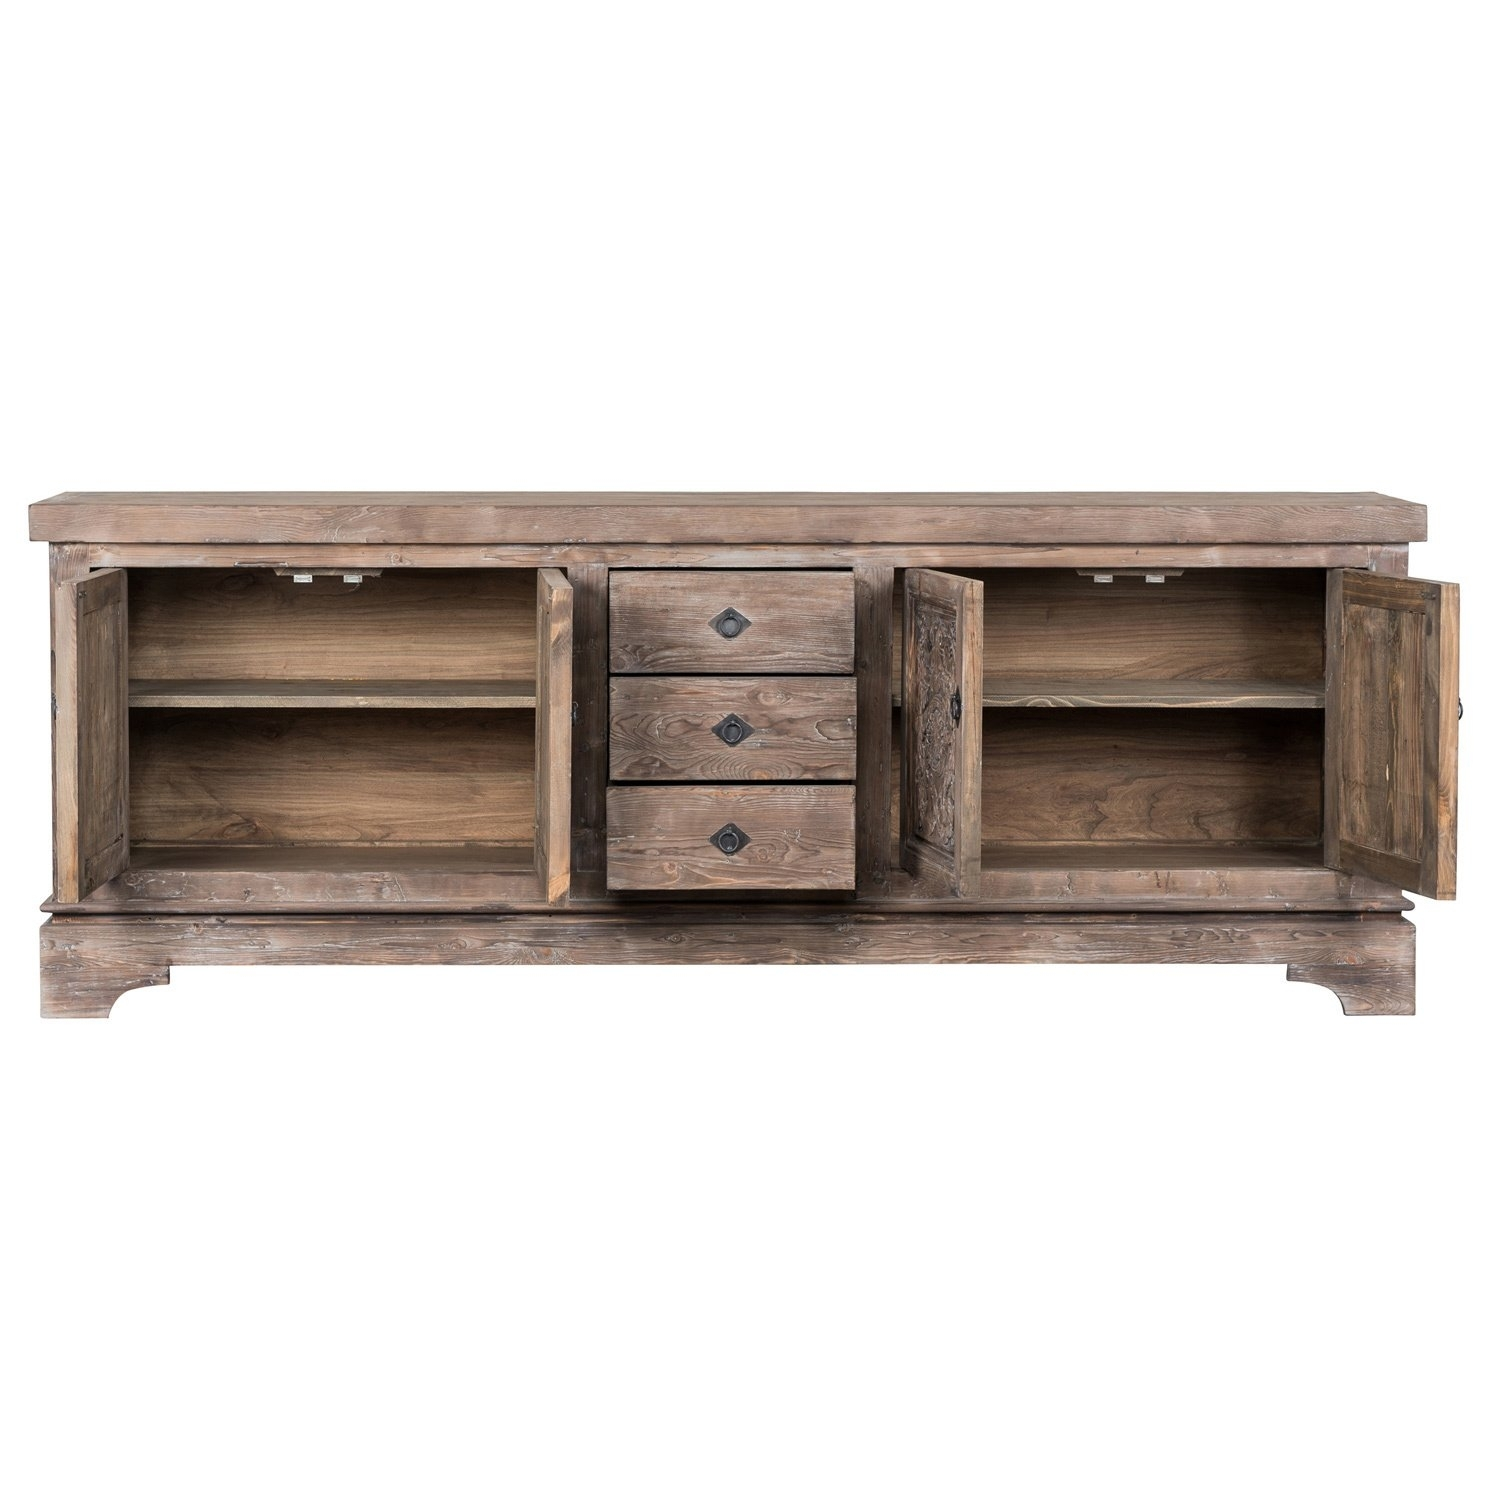 Shop Allen Rustic Taupe Reclaimed Pine 106-Inch Sideboardkosas in Reclaimed Pine & Iron 4-Door Sideboards (Image 19 of 30)